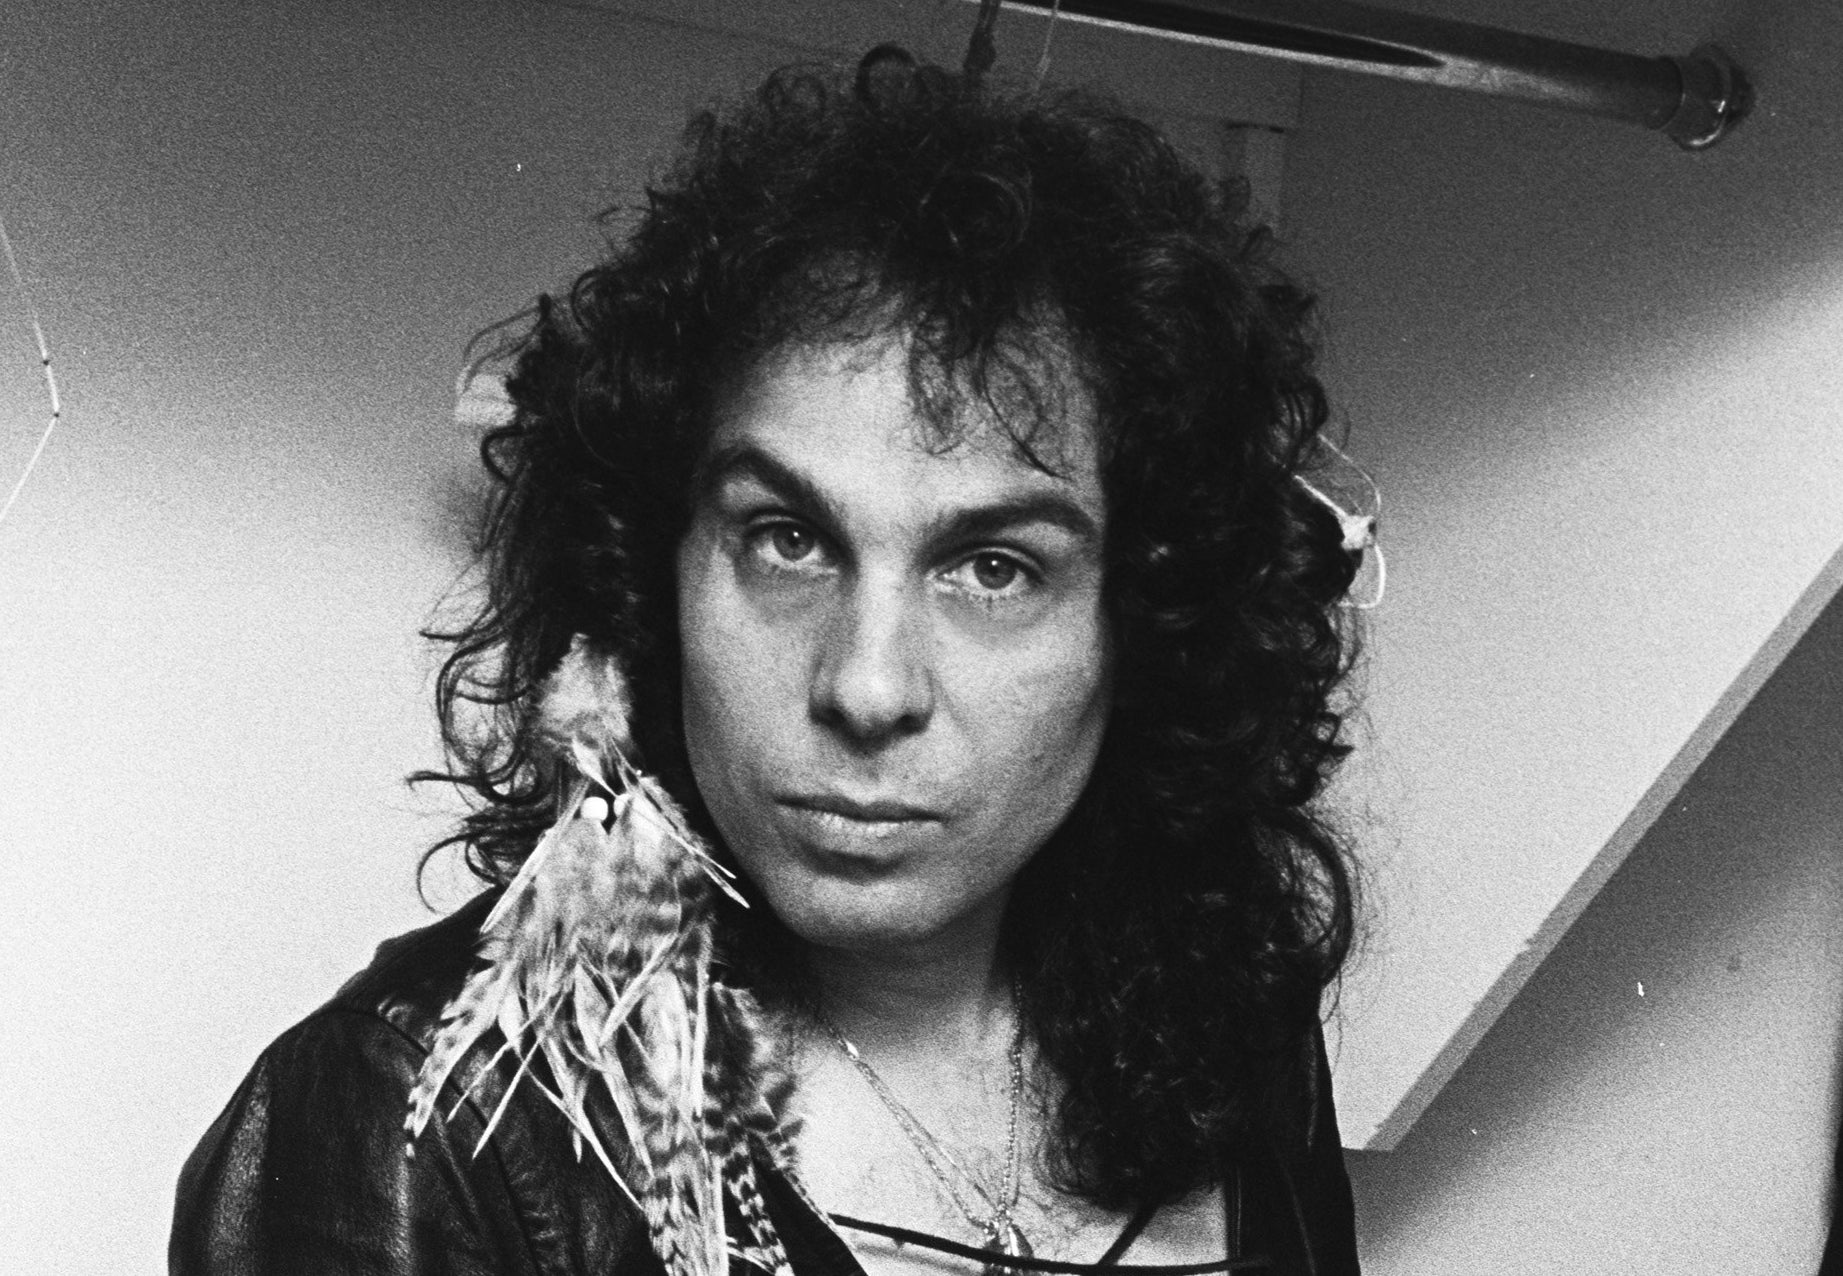 Black-and-white photo of Ronnie James Dio after a concert